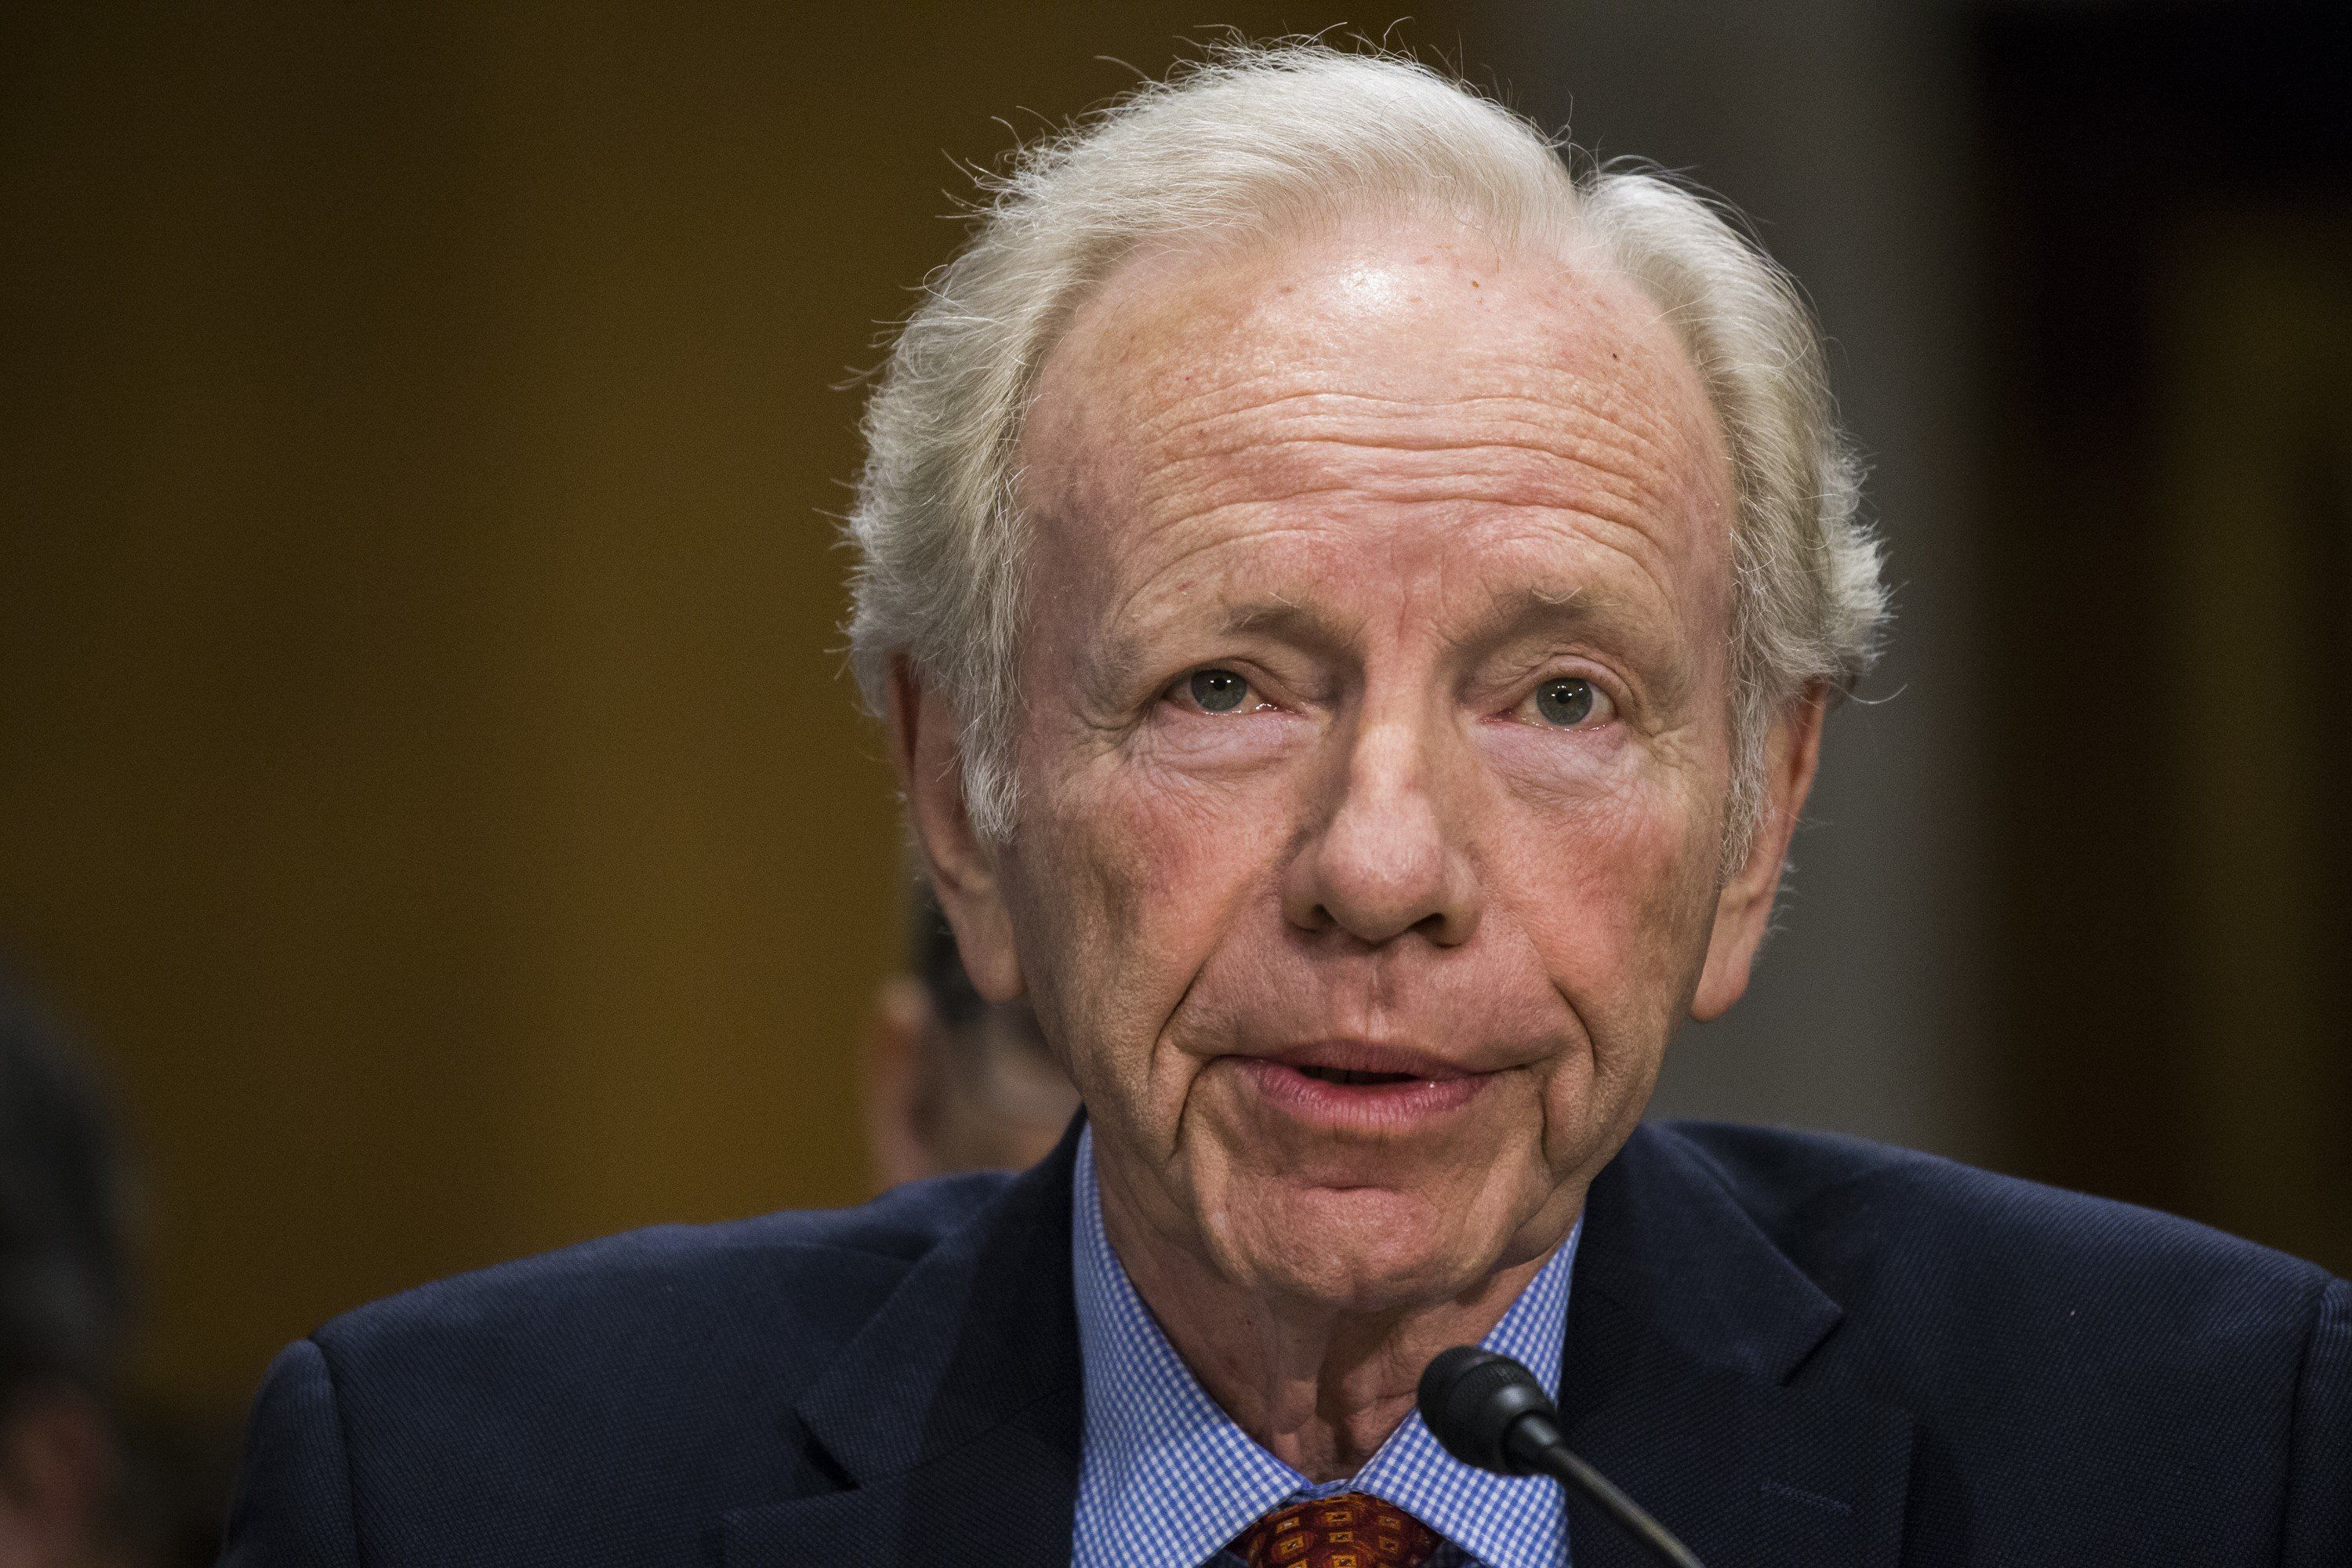 WASHINGTON, USA - FEBRUARY 16: Former Senator Joe Lieberman testifies on behalf of David Friedman in front of the Senate Foreign Relations Committee who are holding a hearing to decide whether or not to accept President Trumps nomination of Friedman to the United States ambassador to Israel in Washington, USA on February 16, 2017. (Photo by Samuel Corum/Anadolu Agency/Getty Images)